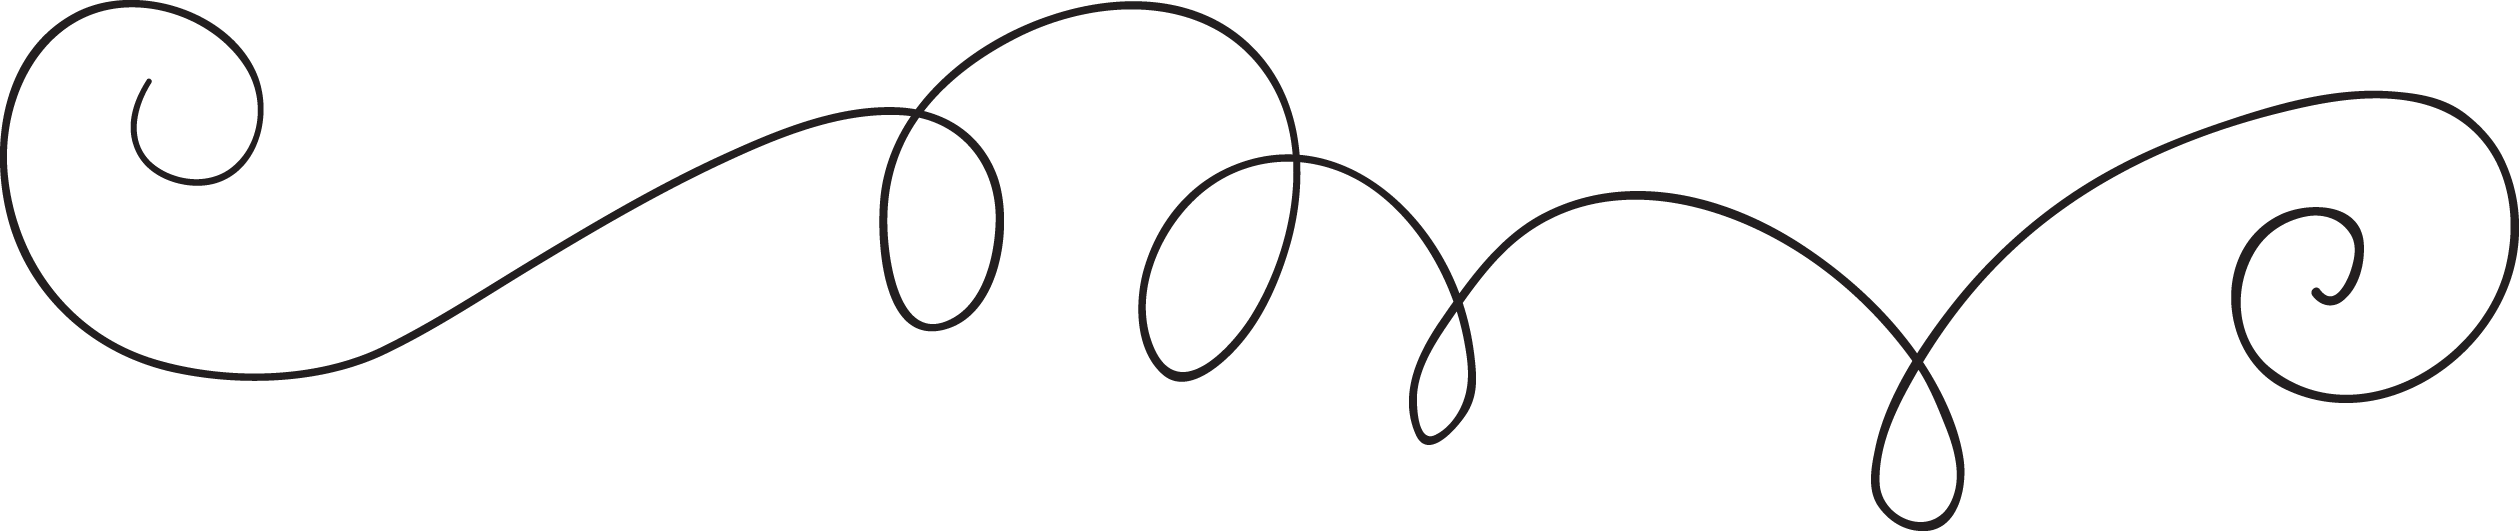 Black swirl png. Line transparent pictures free